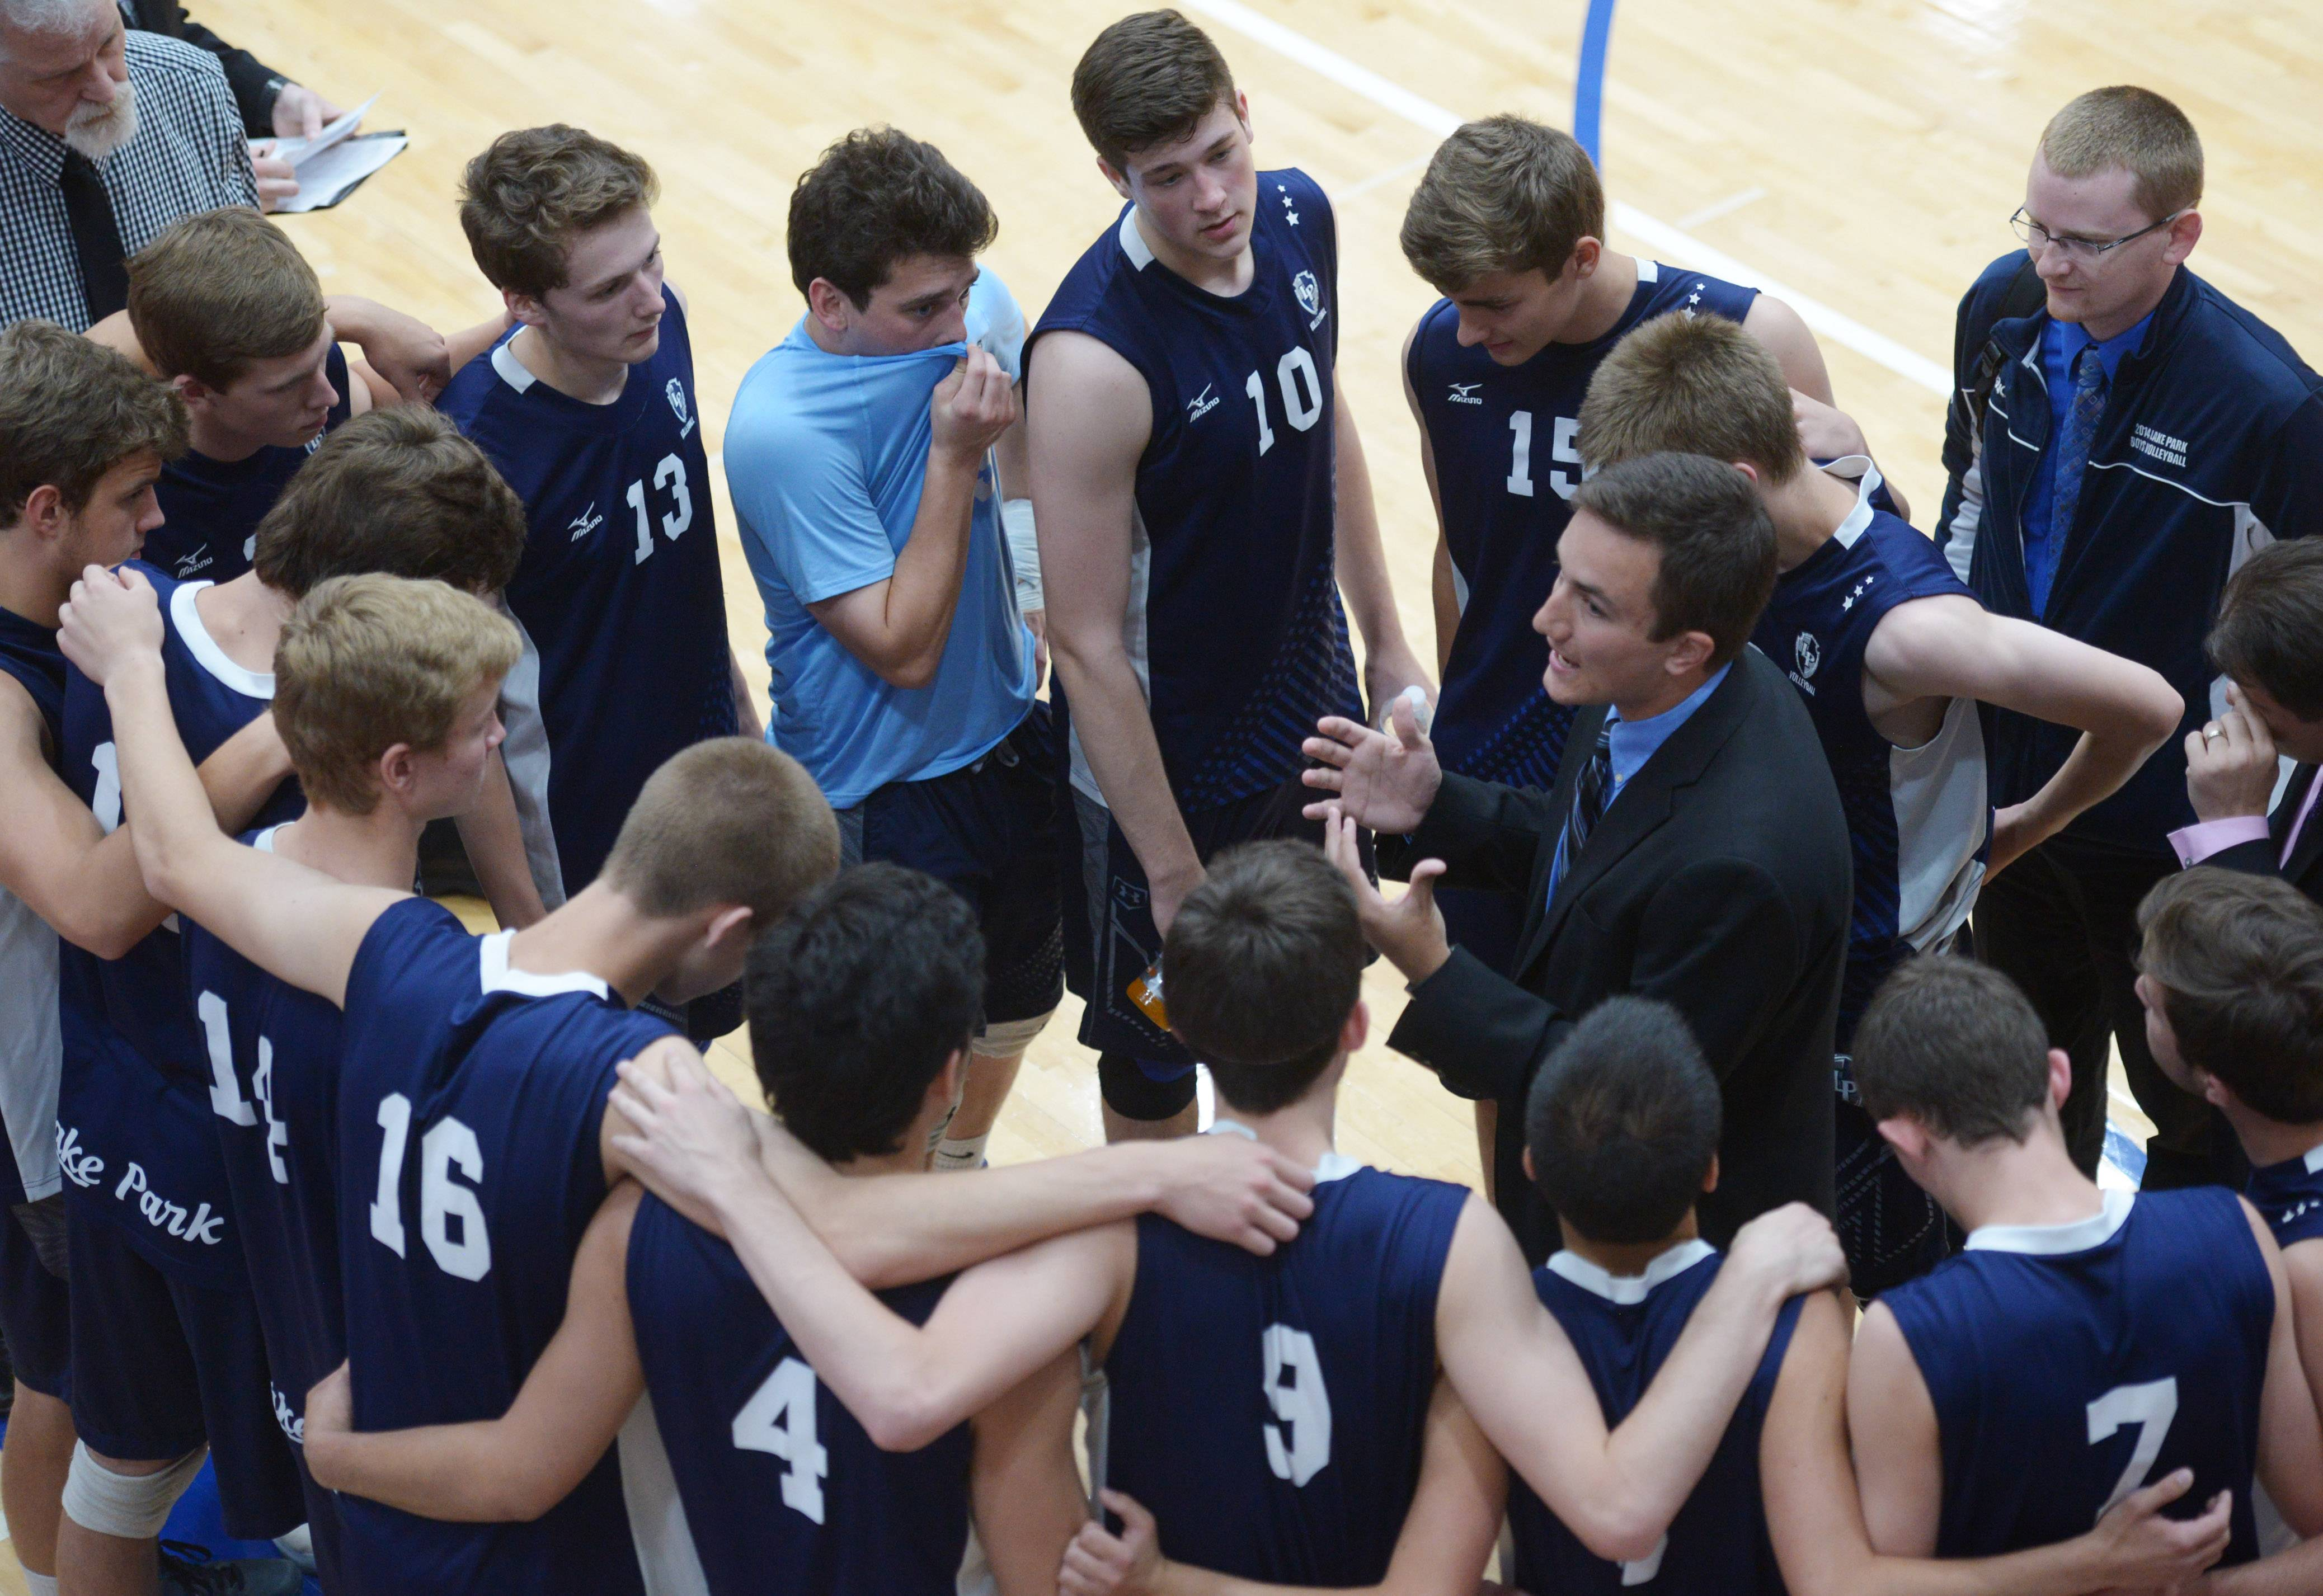 Lake Park players and coaches discuss their game plan during the boys volleyball state quarterfinals at Hoffman Estates High School Friday.